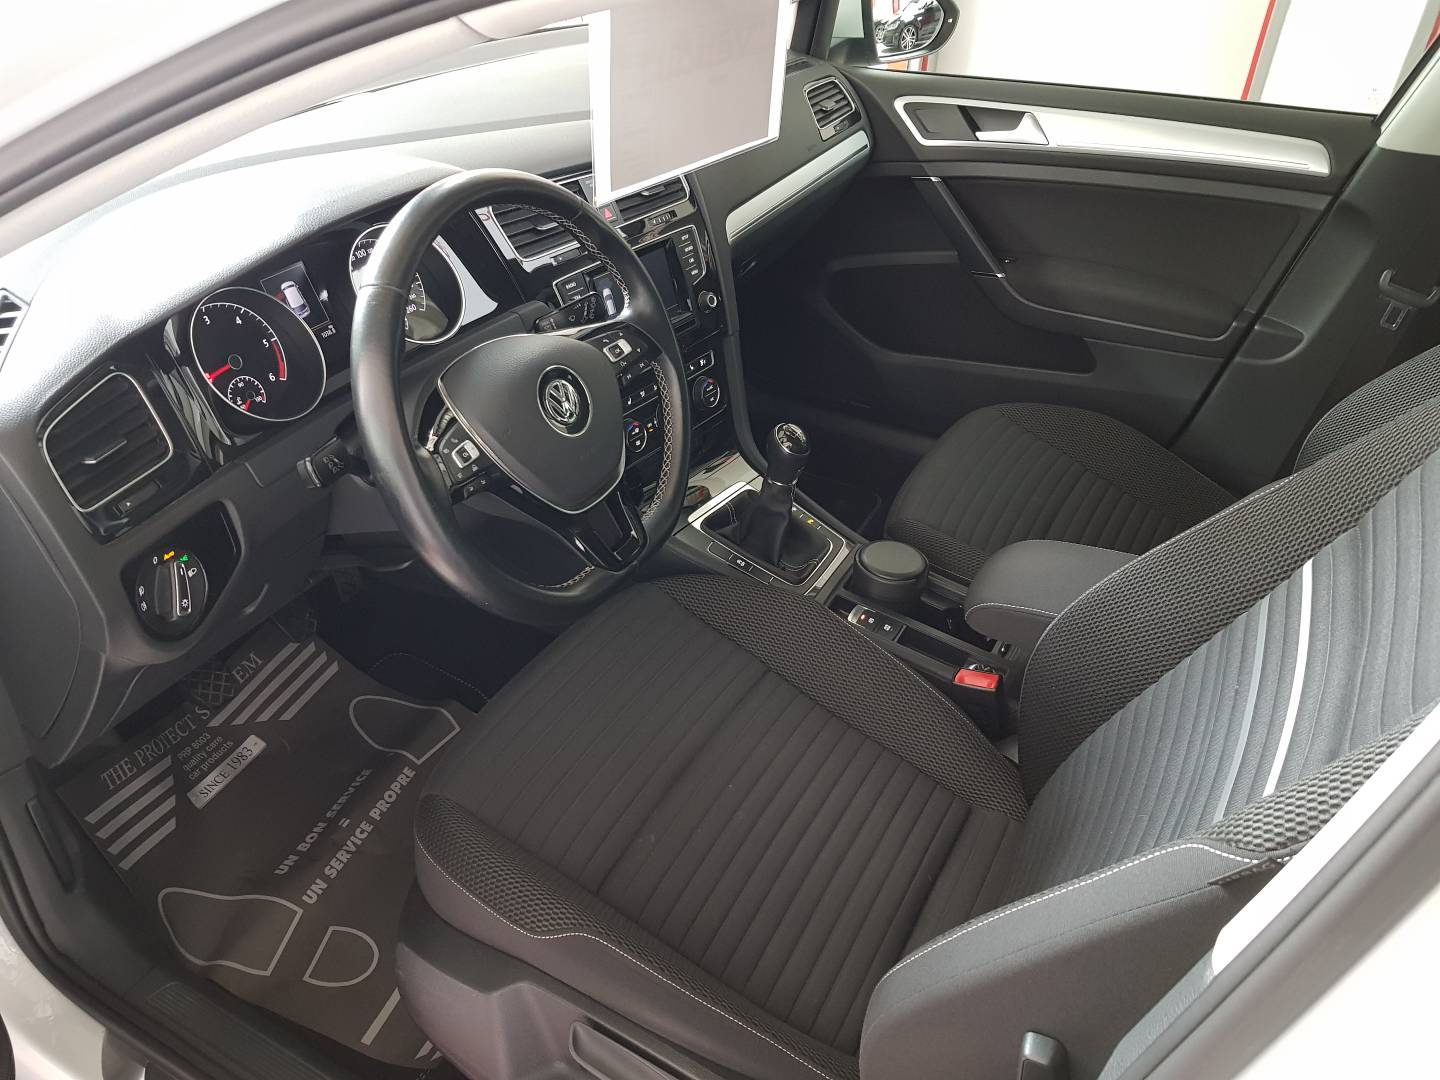 VW GOLF 7 TDI 110